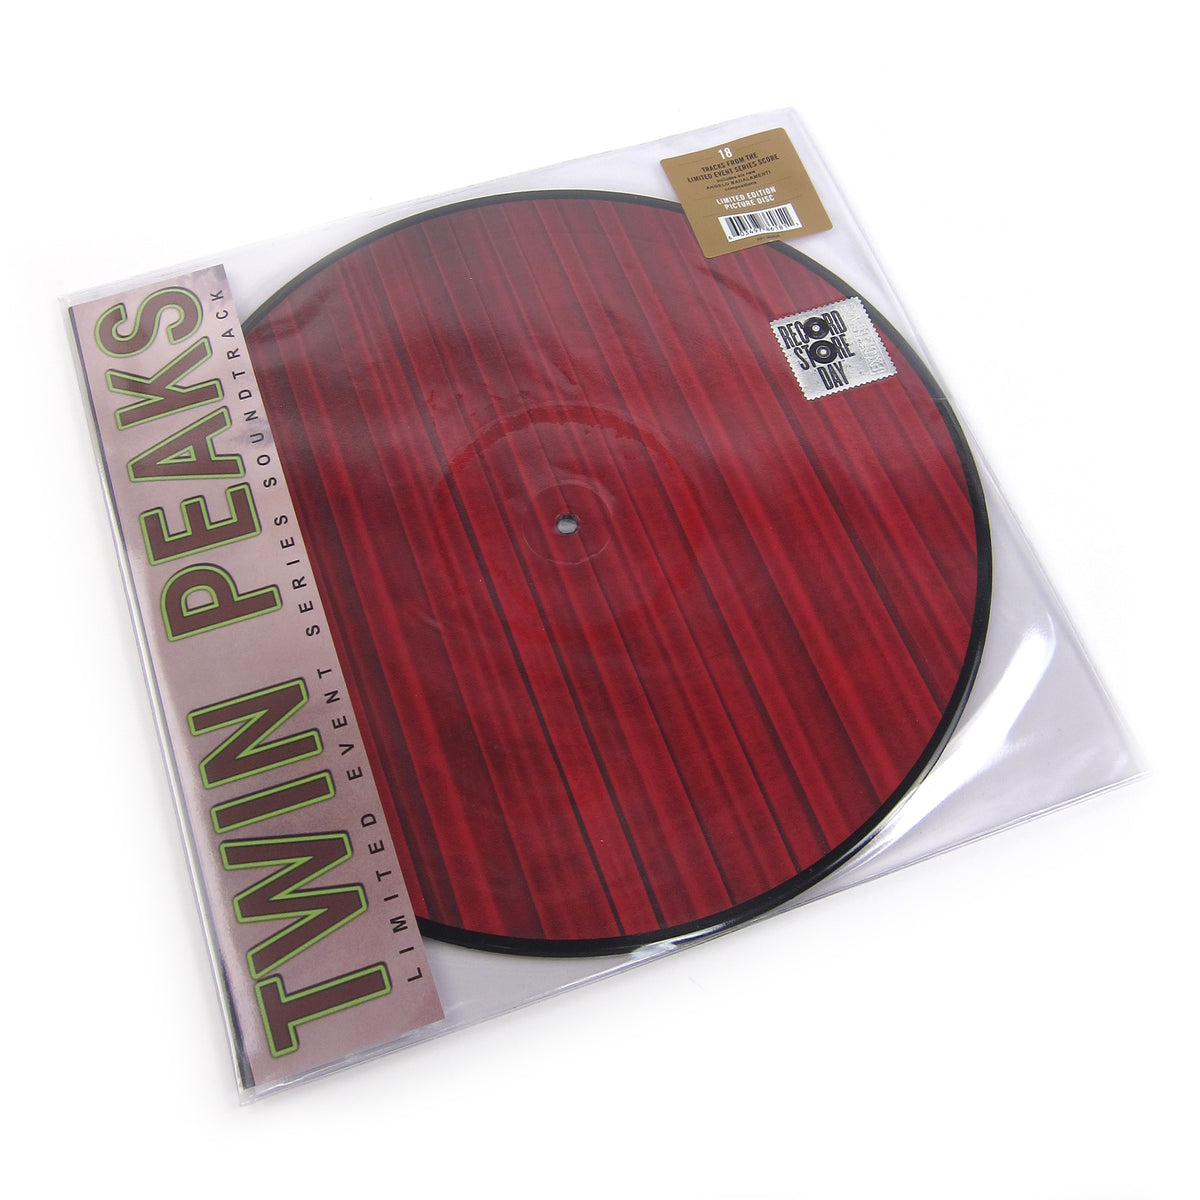 Twin Peaks: Limited Event Series Soundtrack (Pic Disc) Vinyl 2LP (Record Store Day)